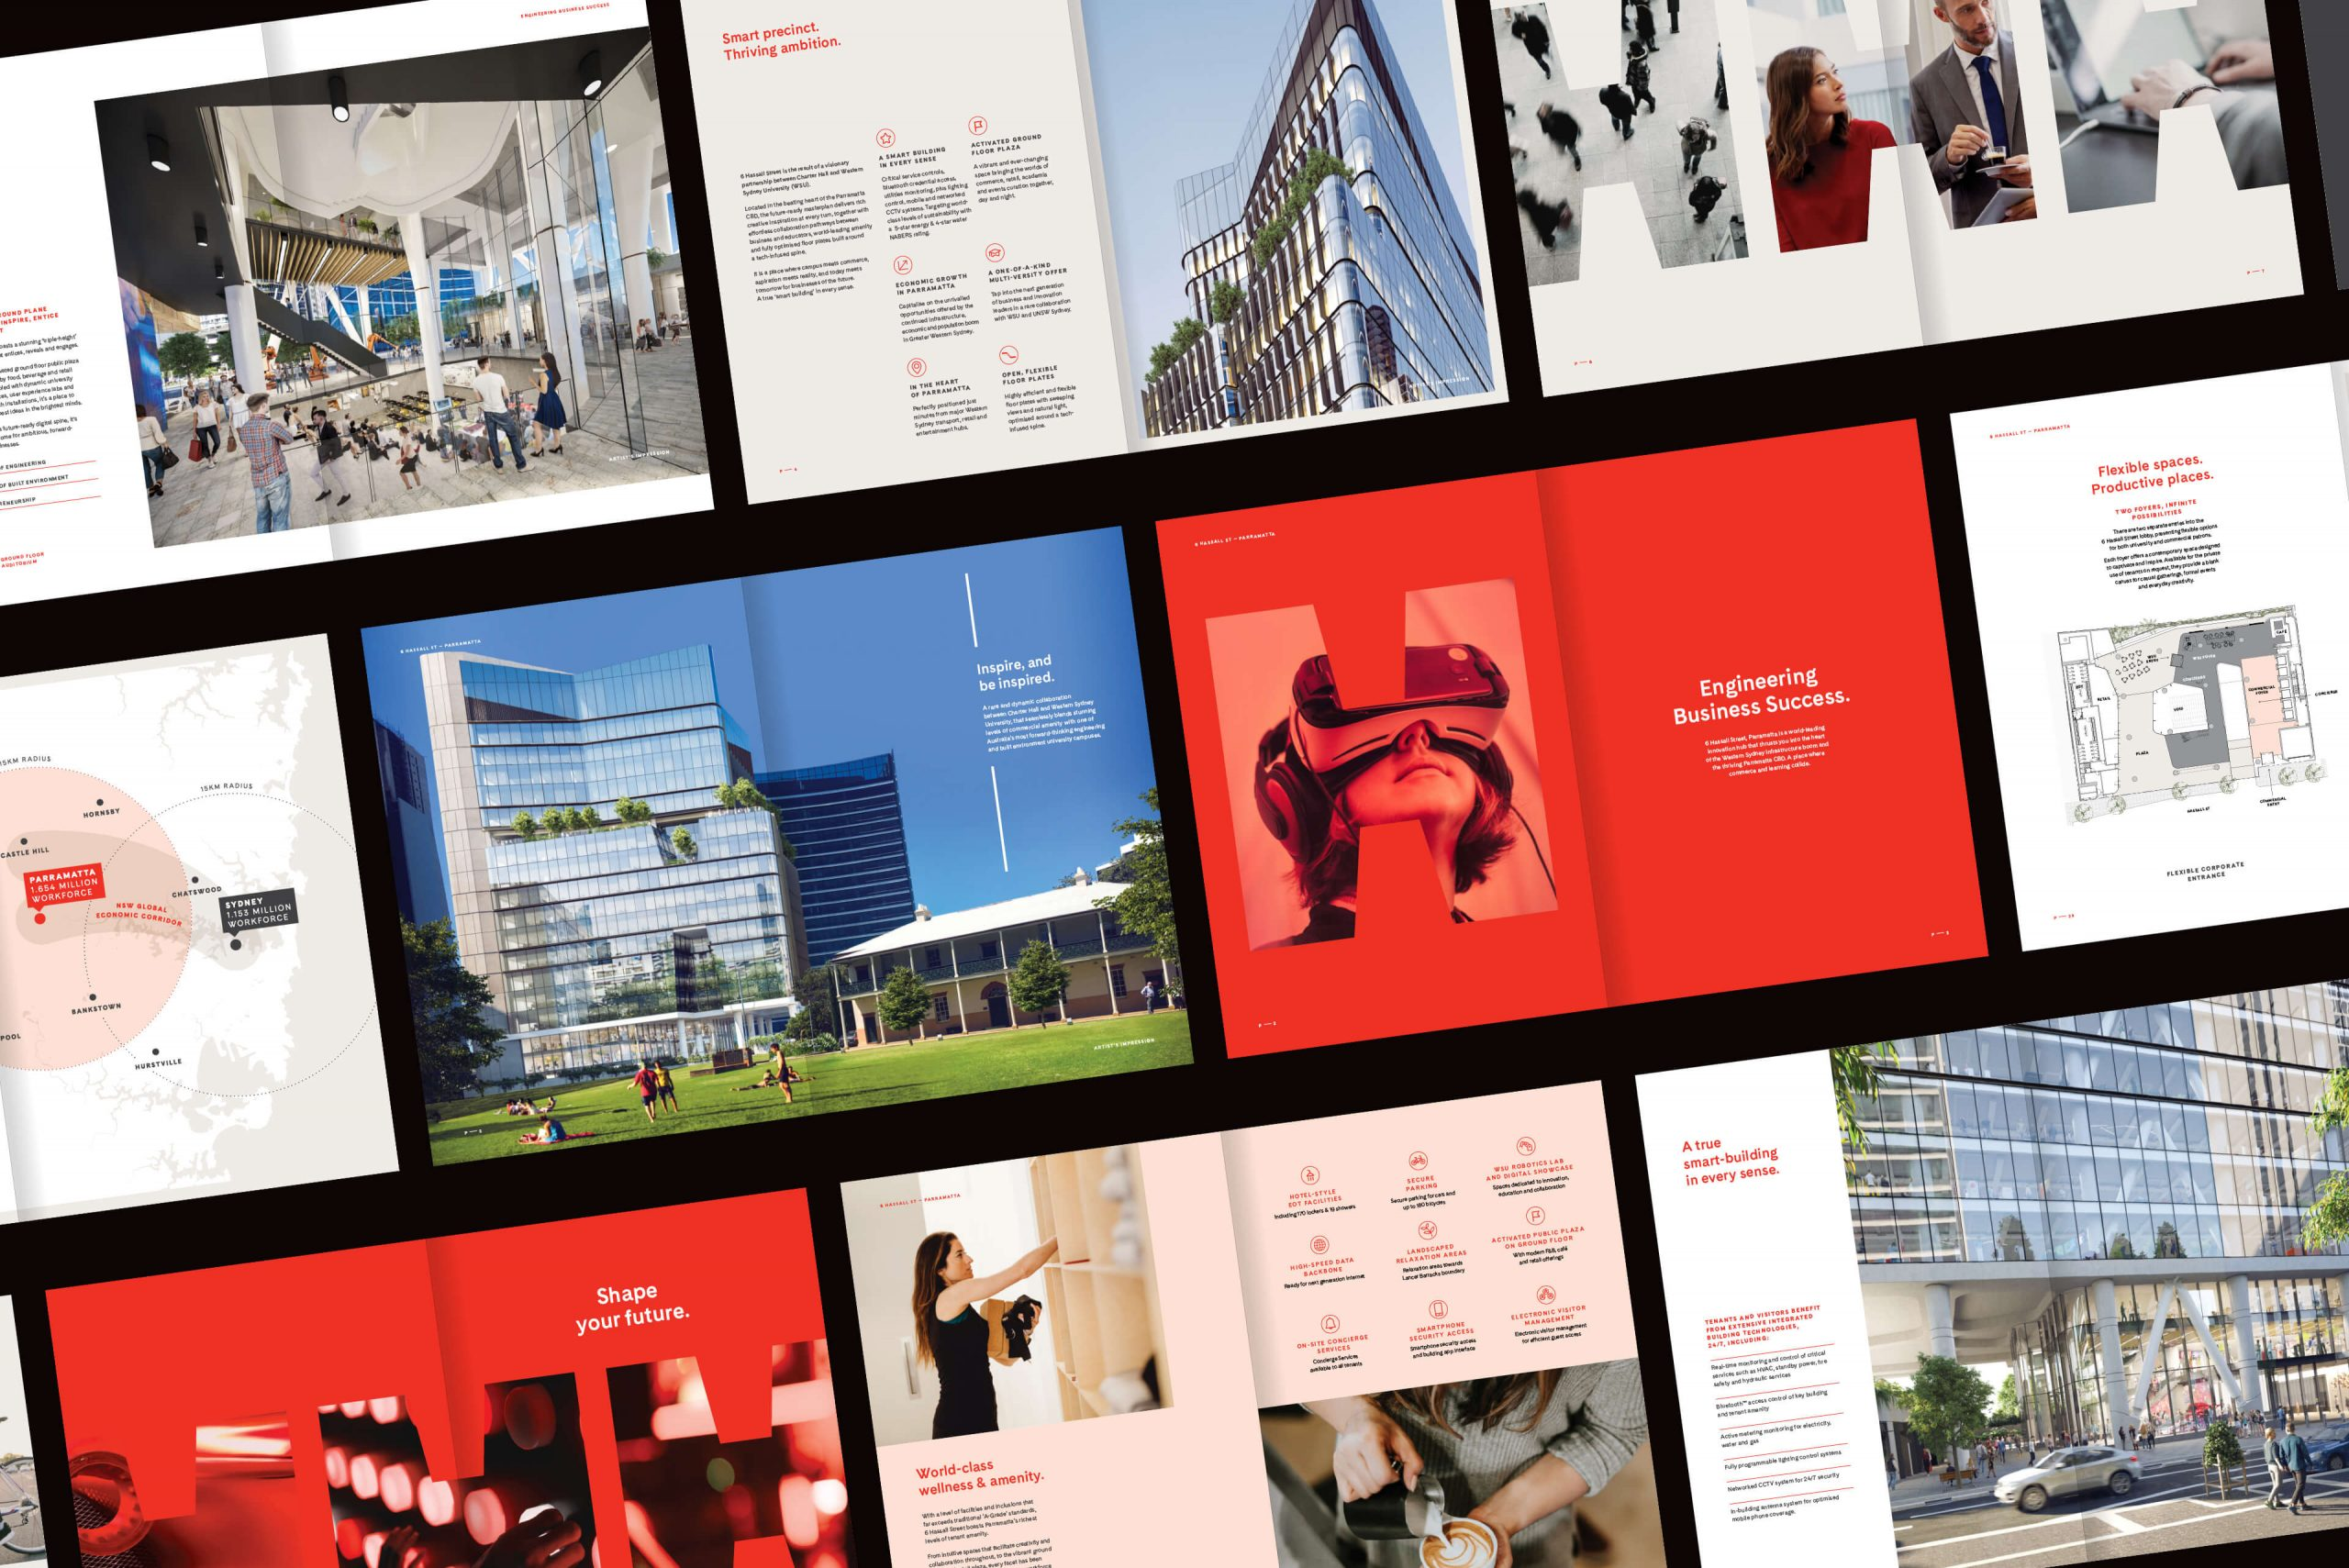 6 Hassall St Property Brand for Charter Hall - Brochure Spread Overview